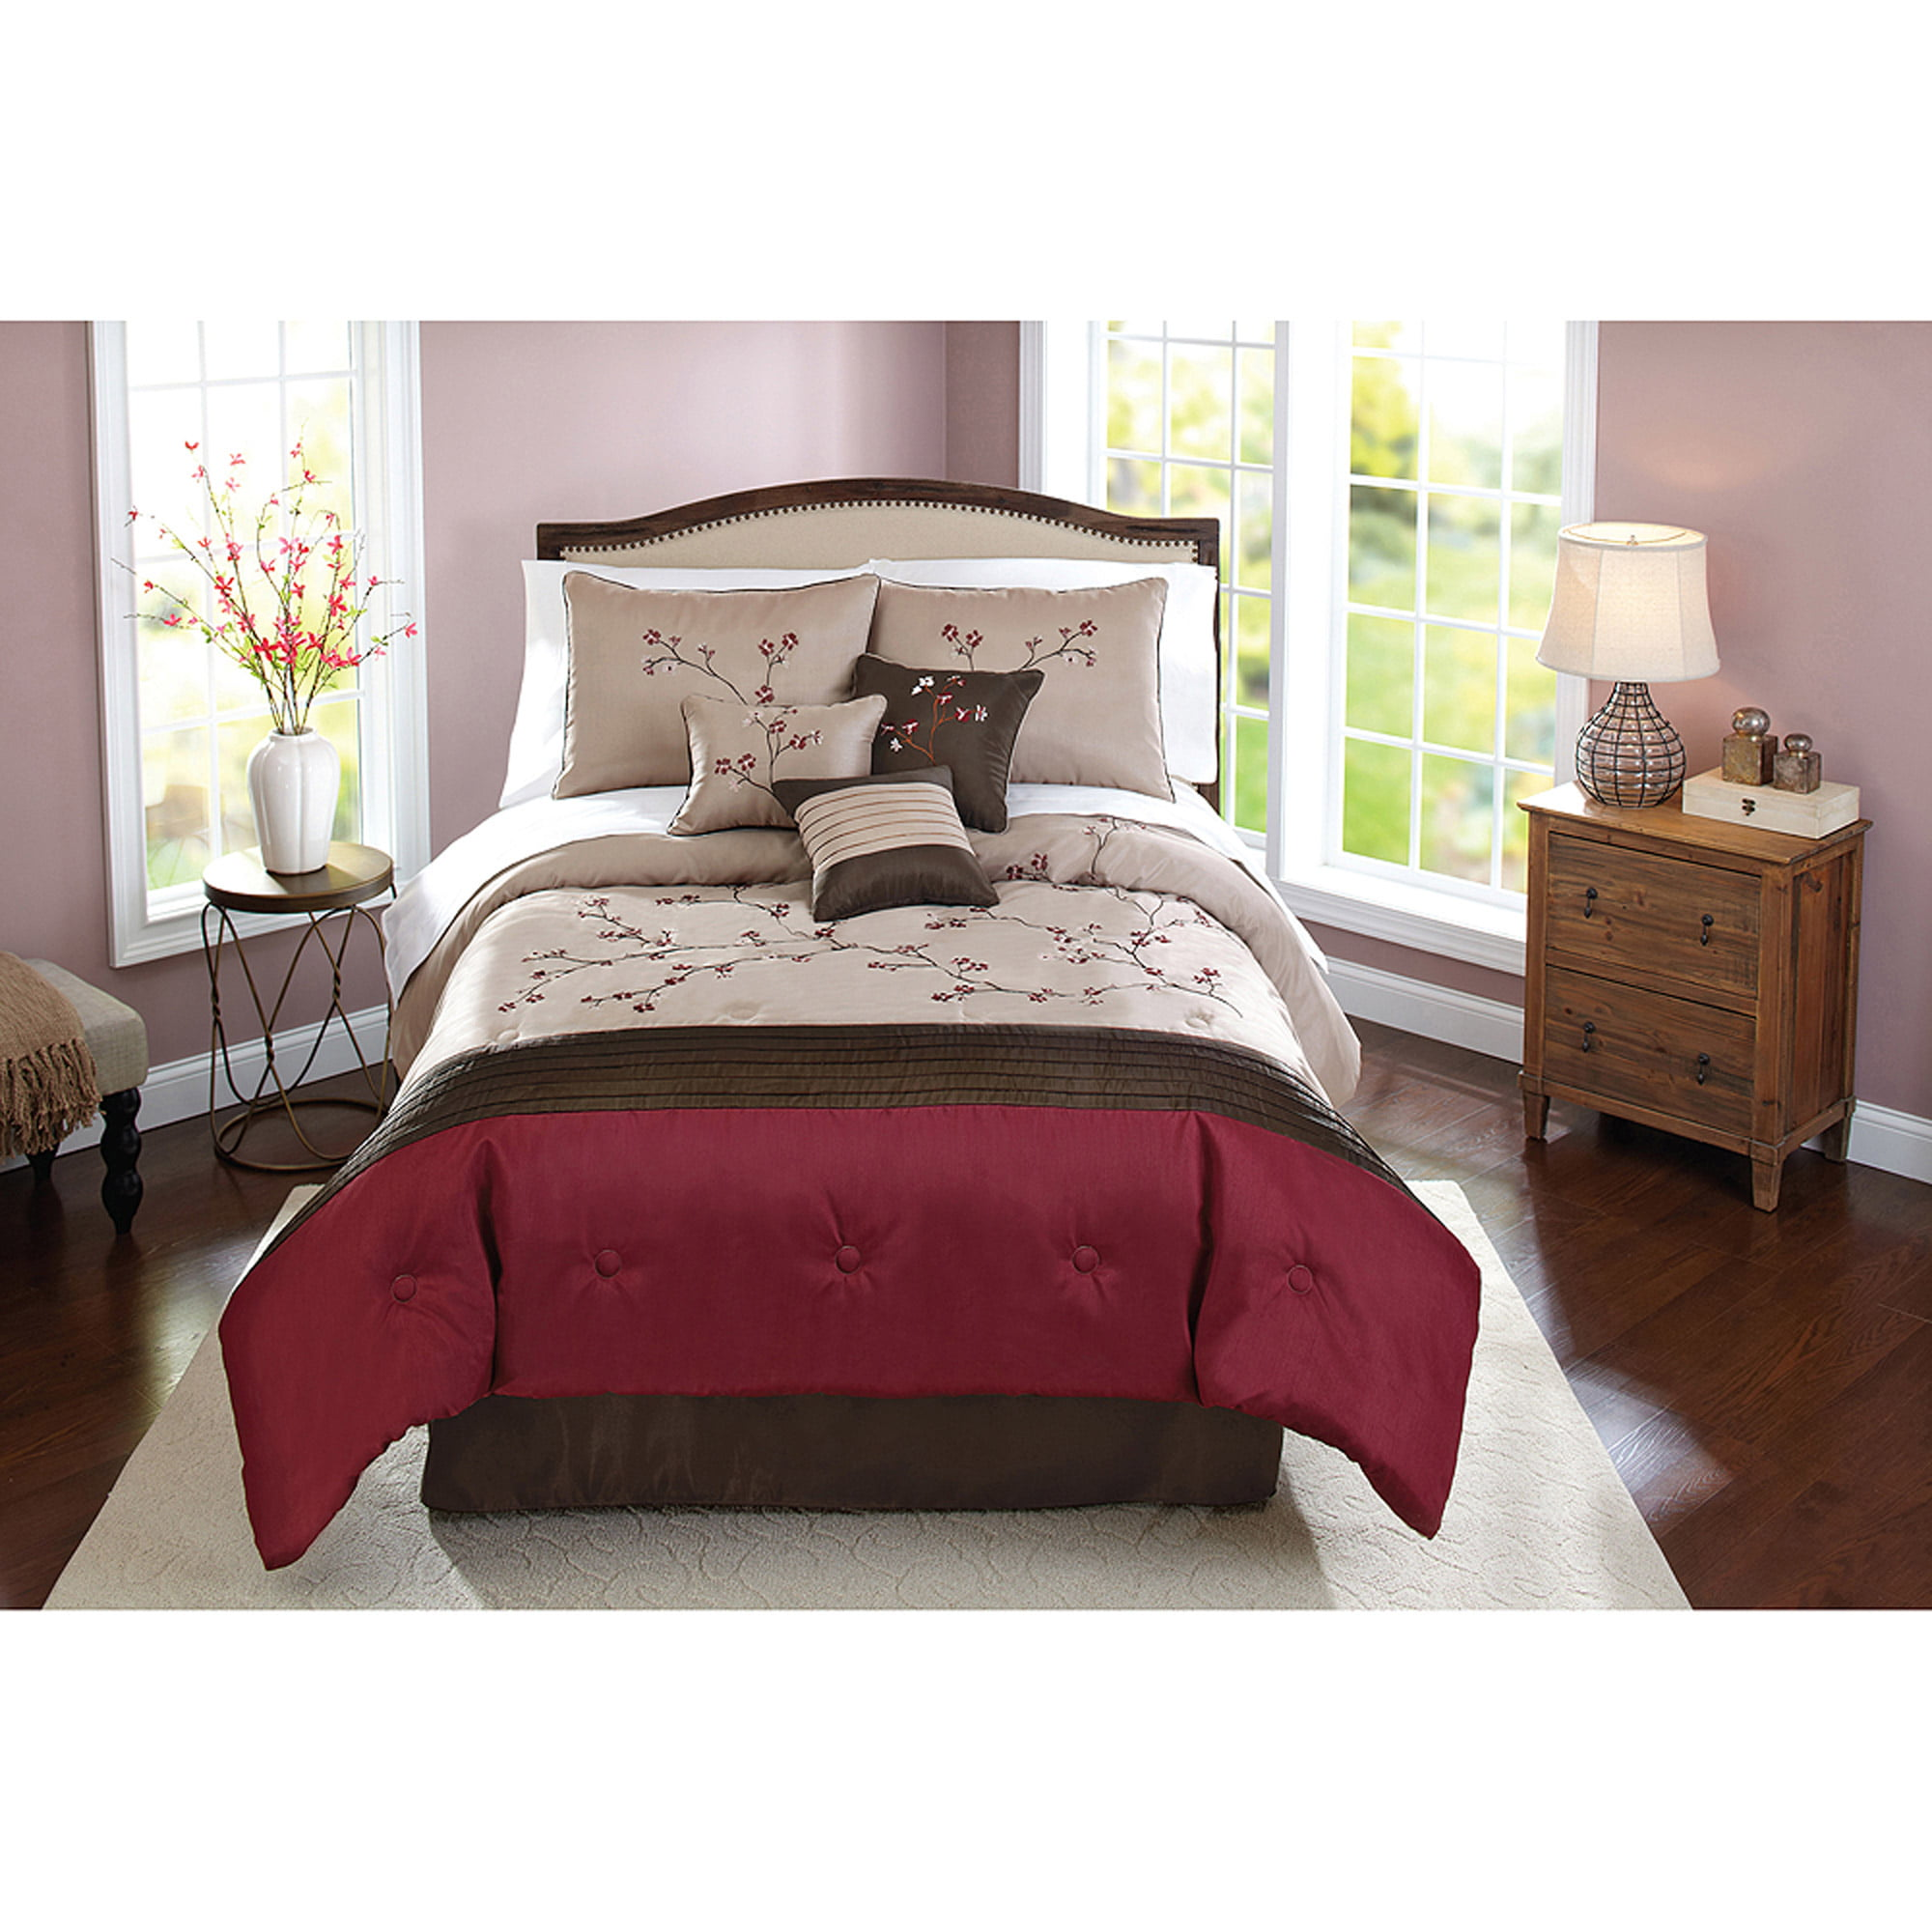 inside black red sets comforters com bedroom and comforter designs king size spurinteractive in